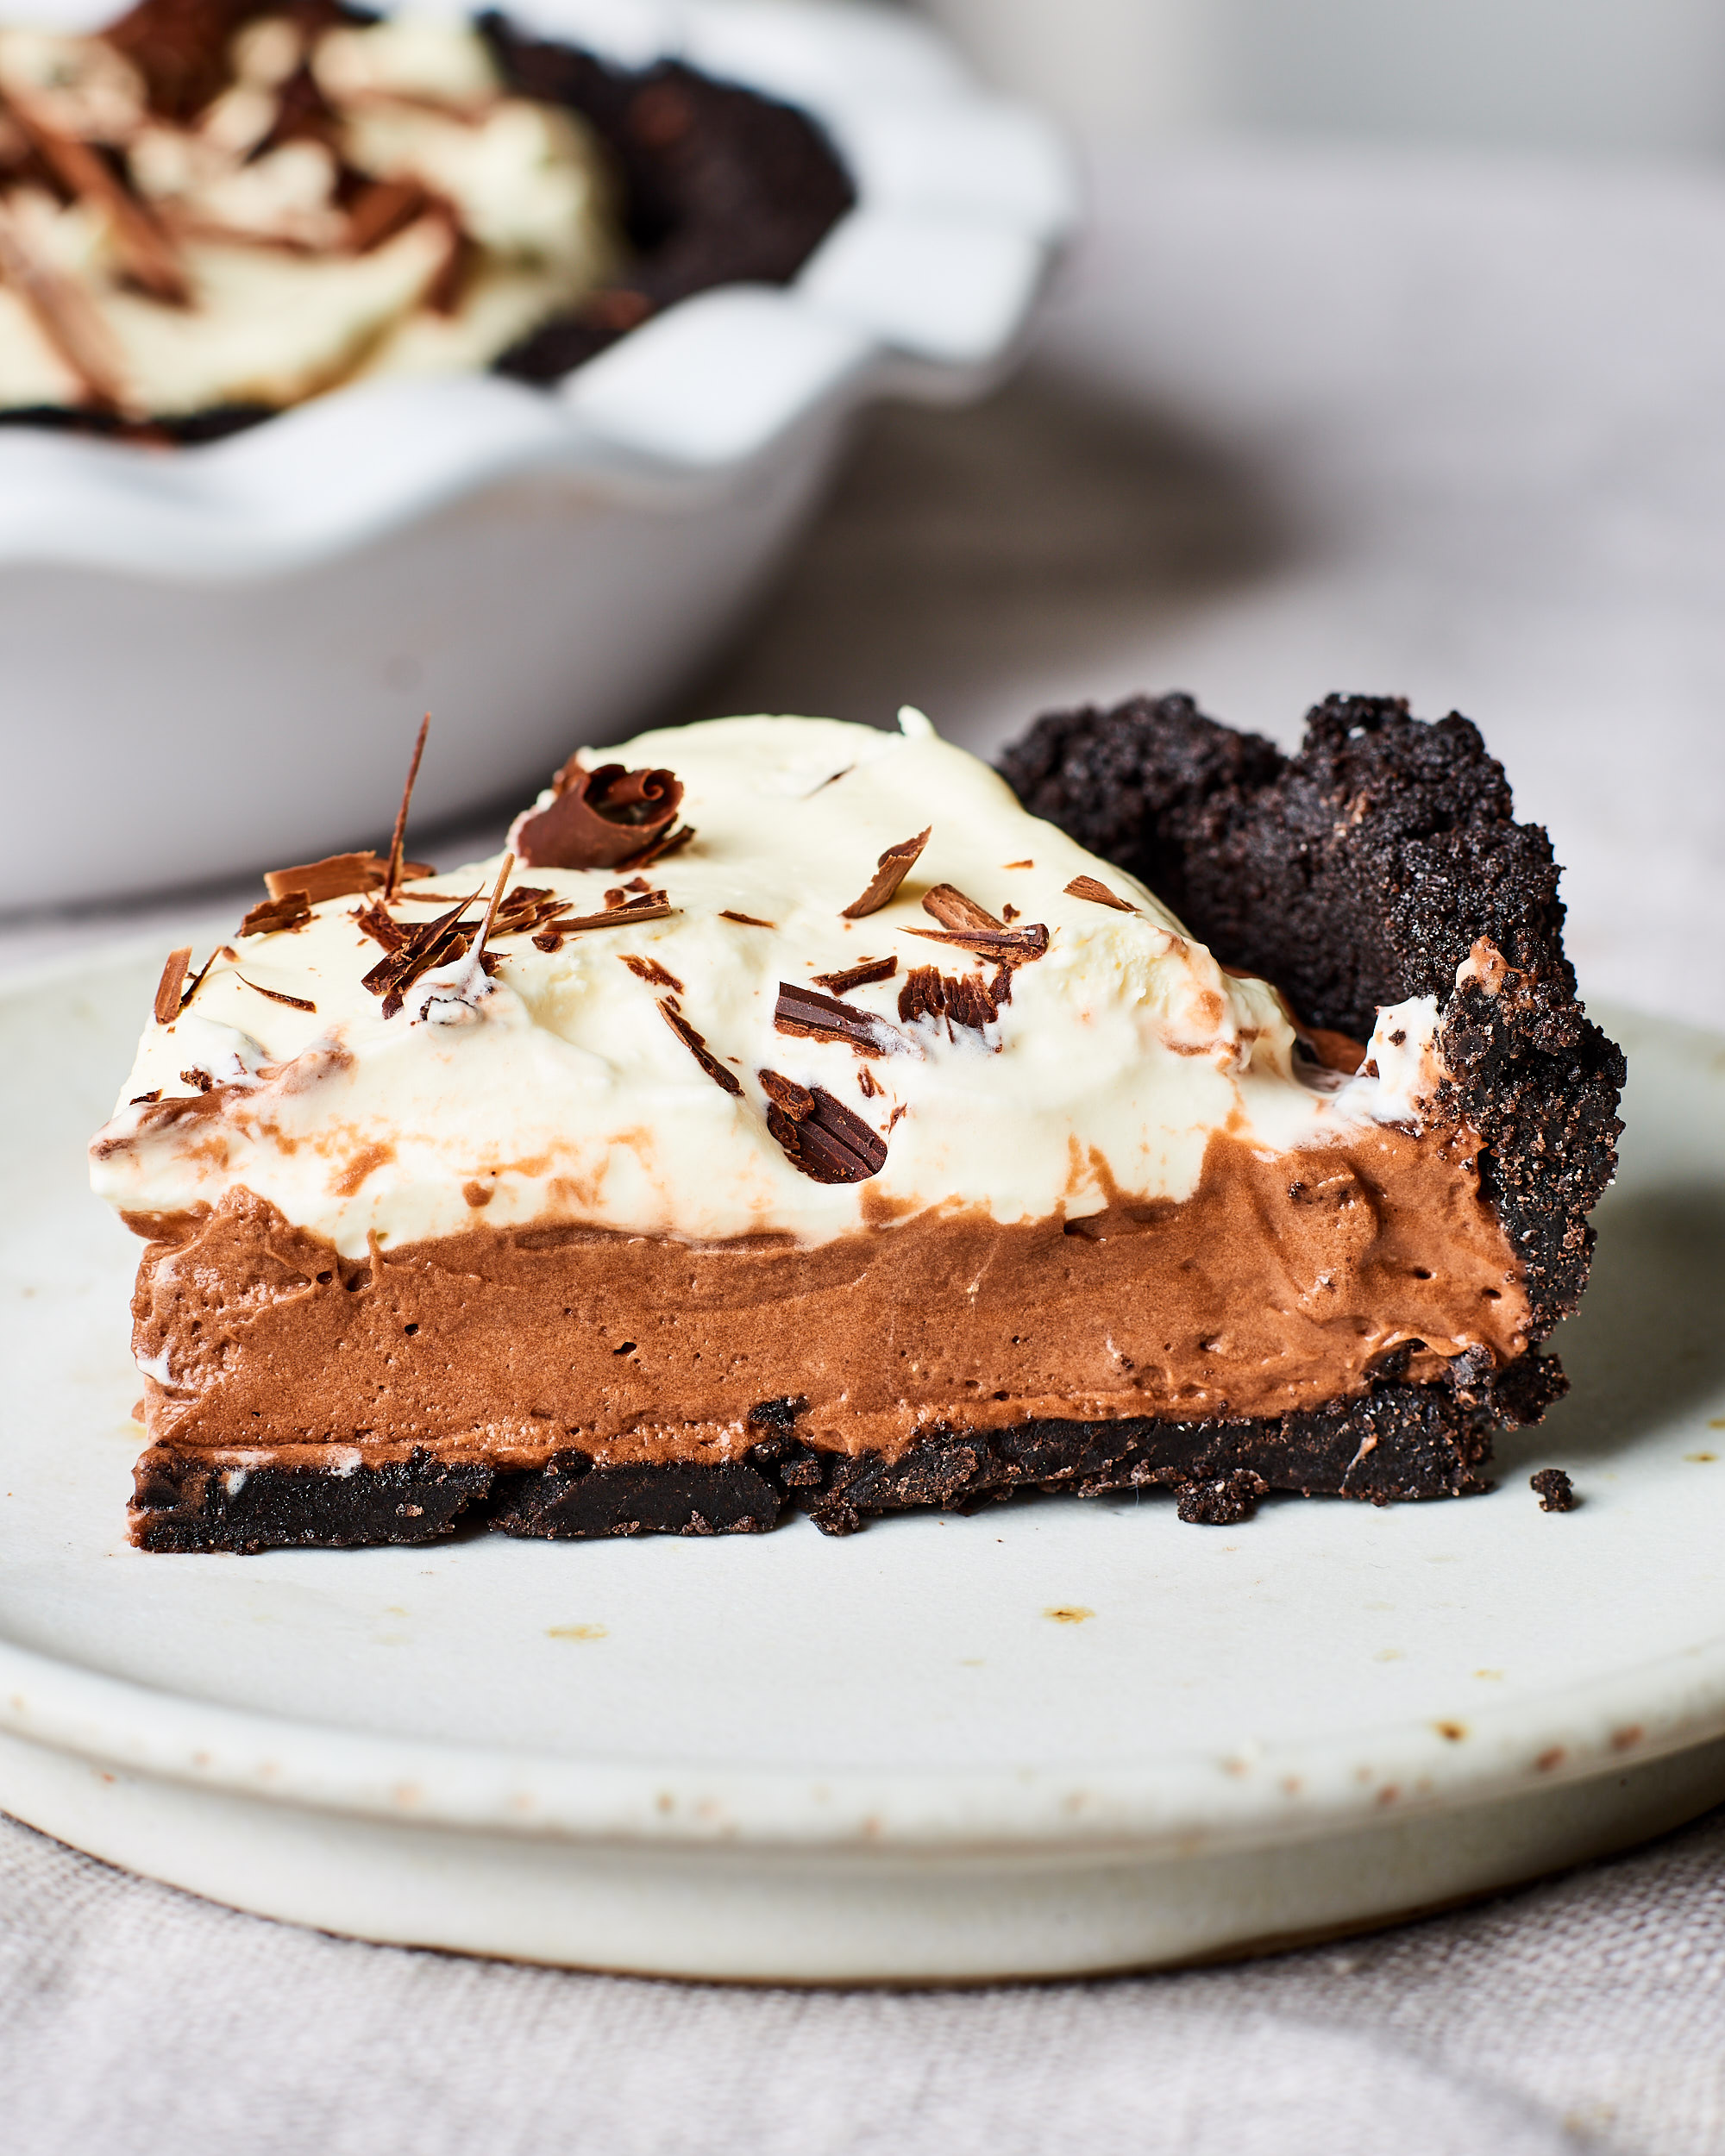 No Bake Oreo Kuchen Chocolate Cream Pie